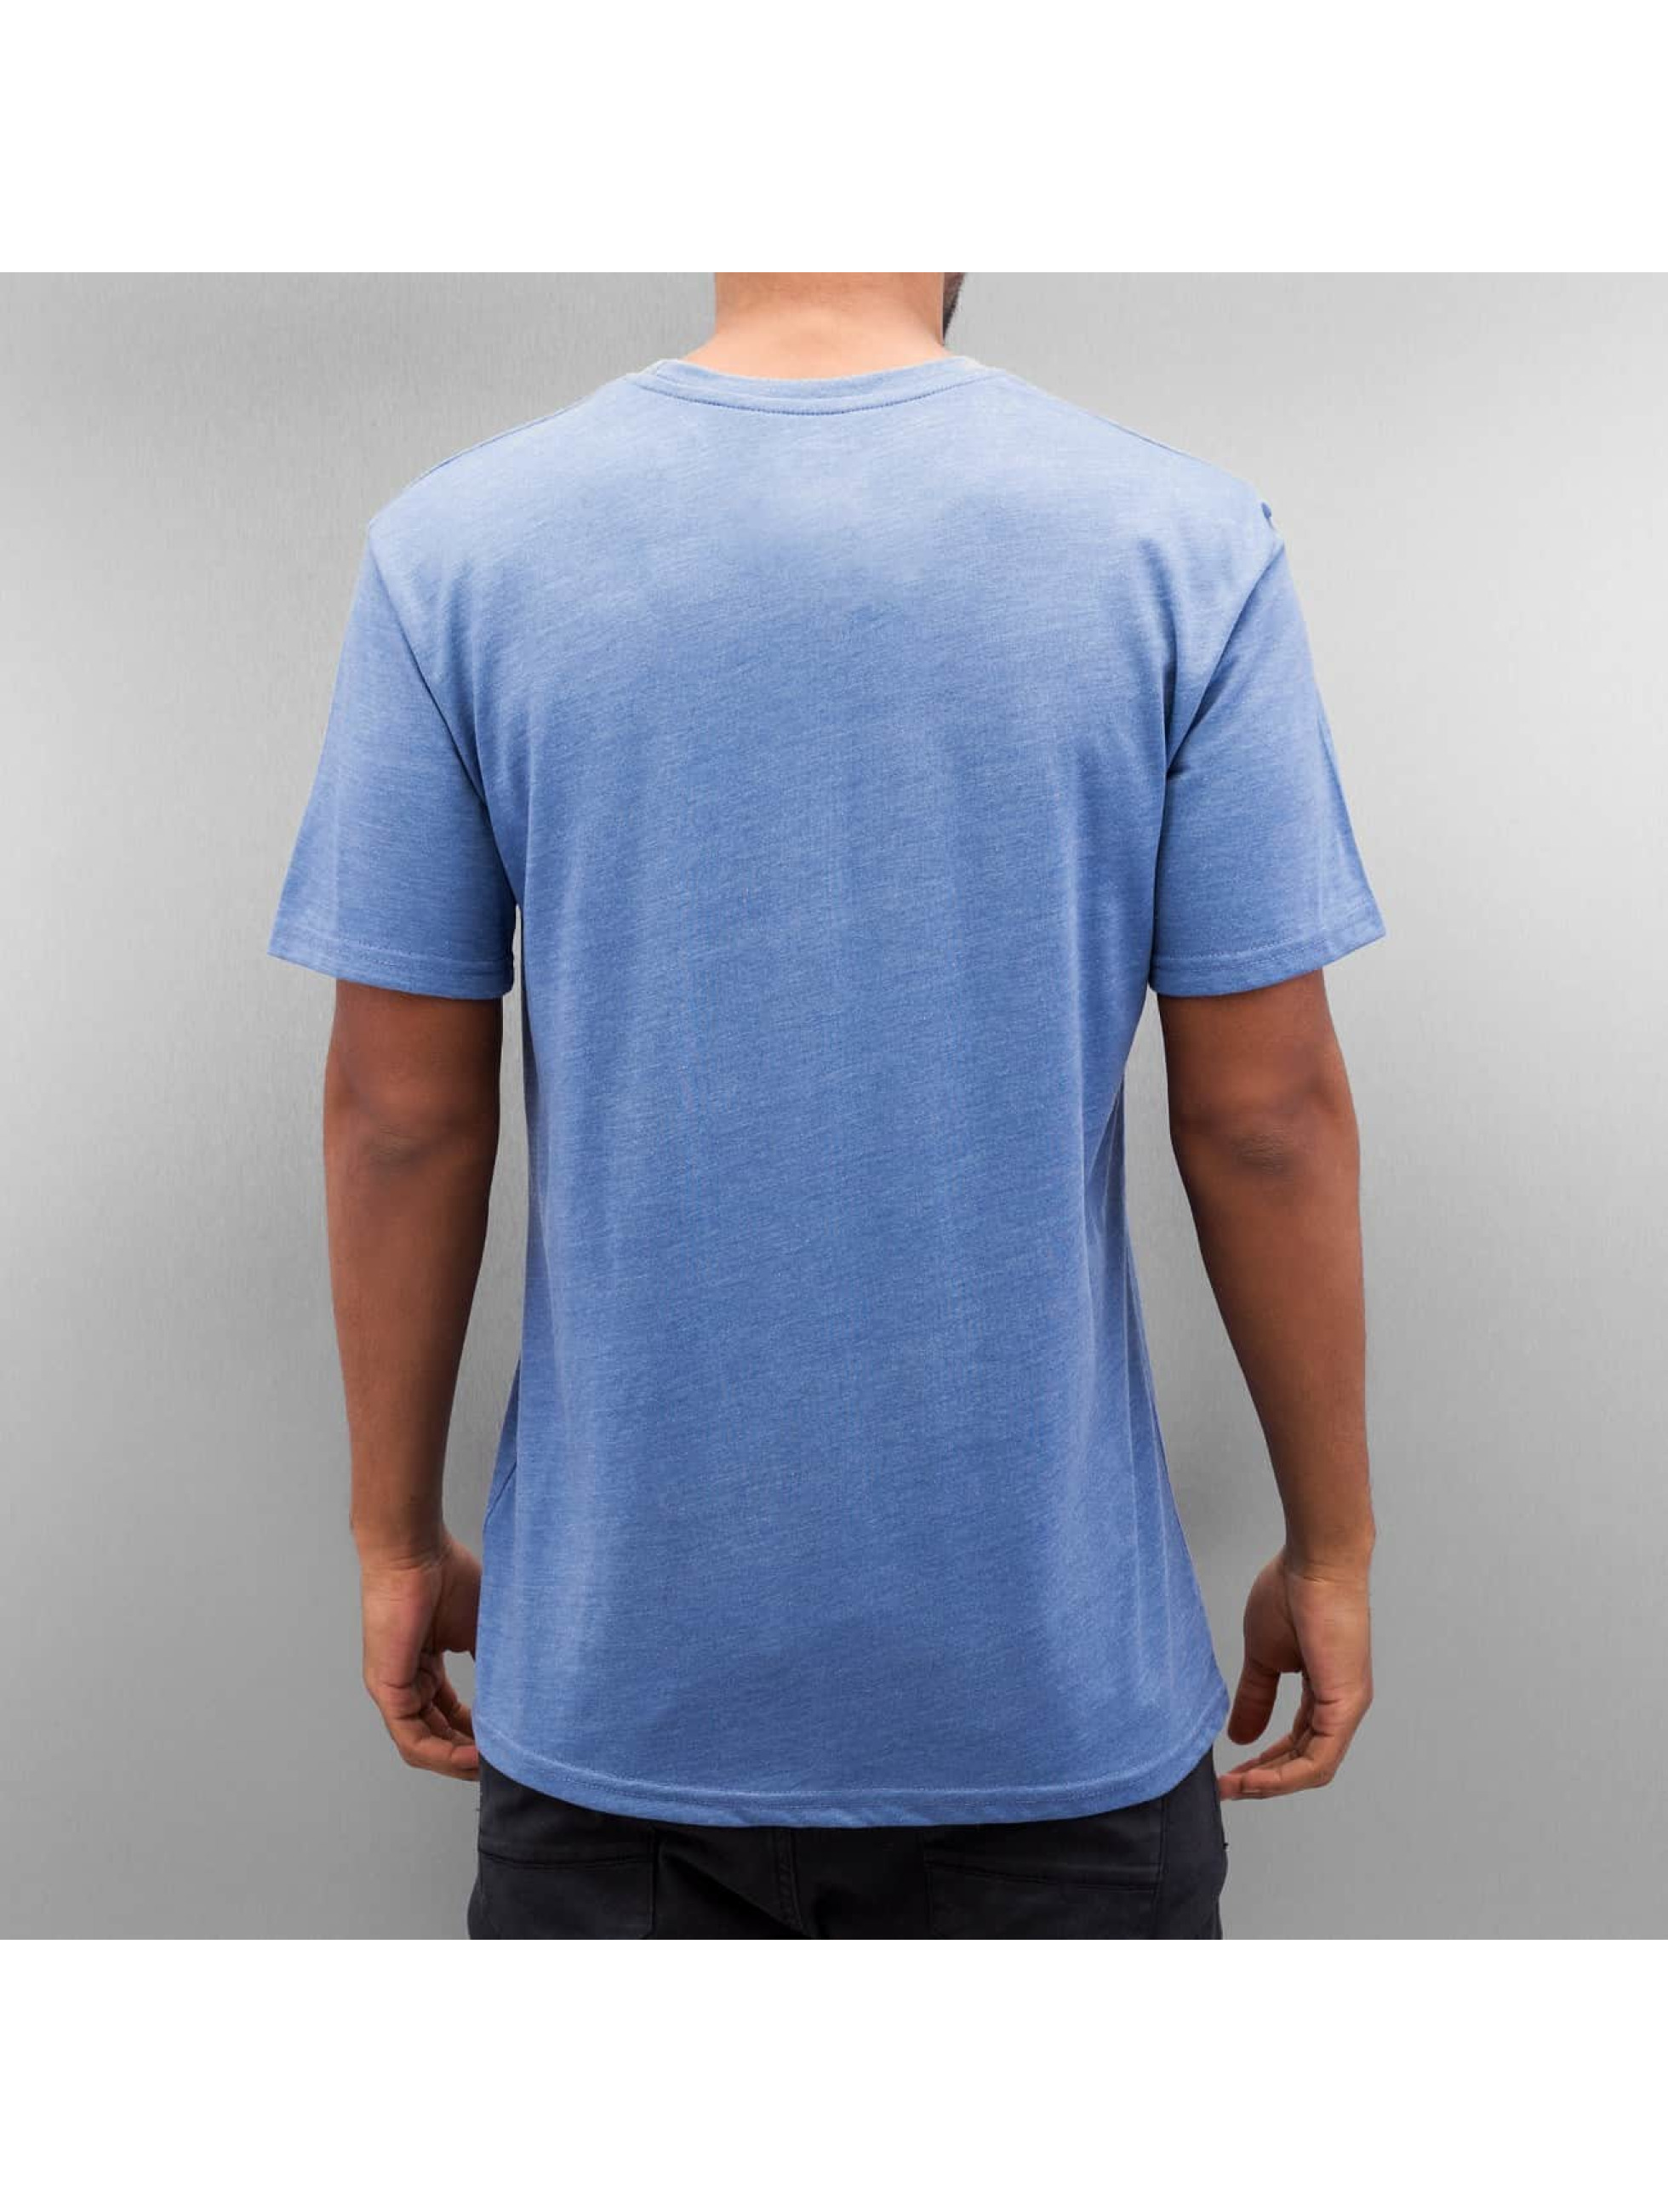 Cyprime T-Shirt Breast Pocket blau